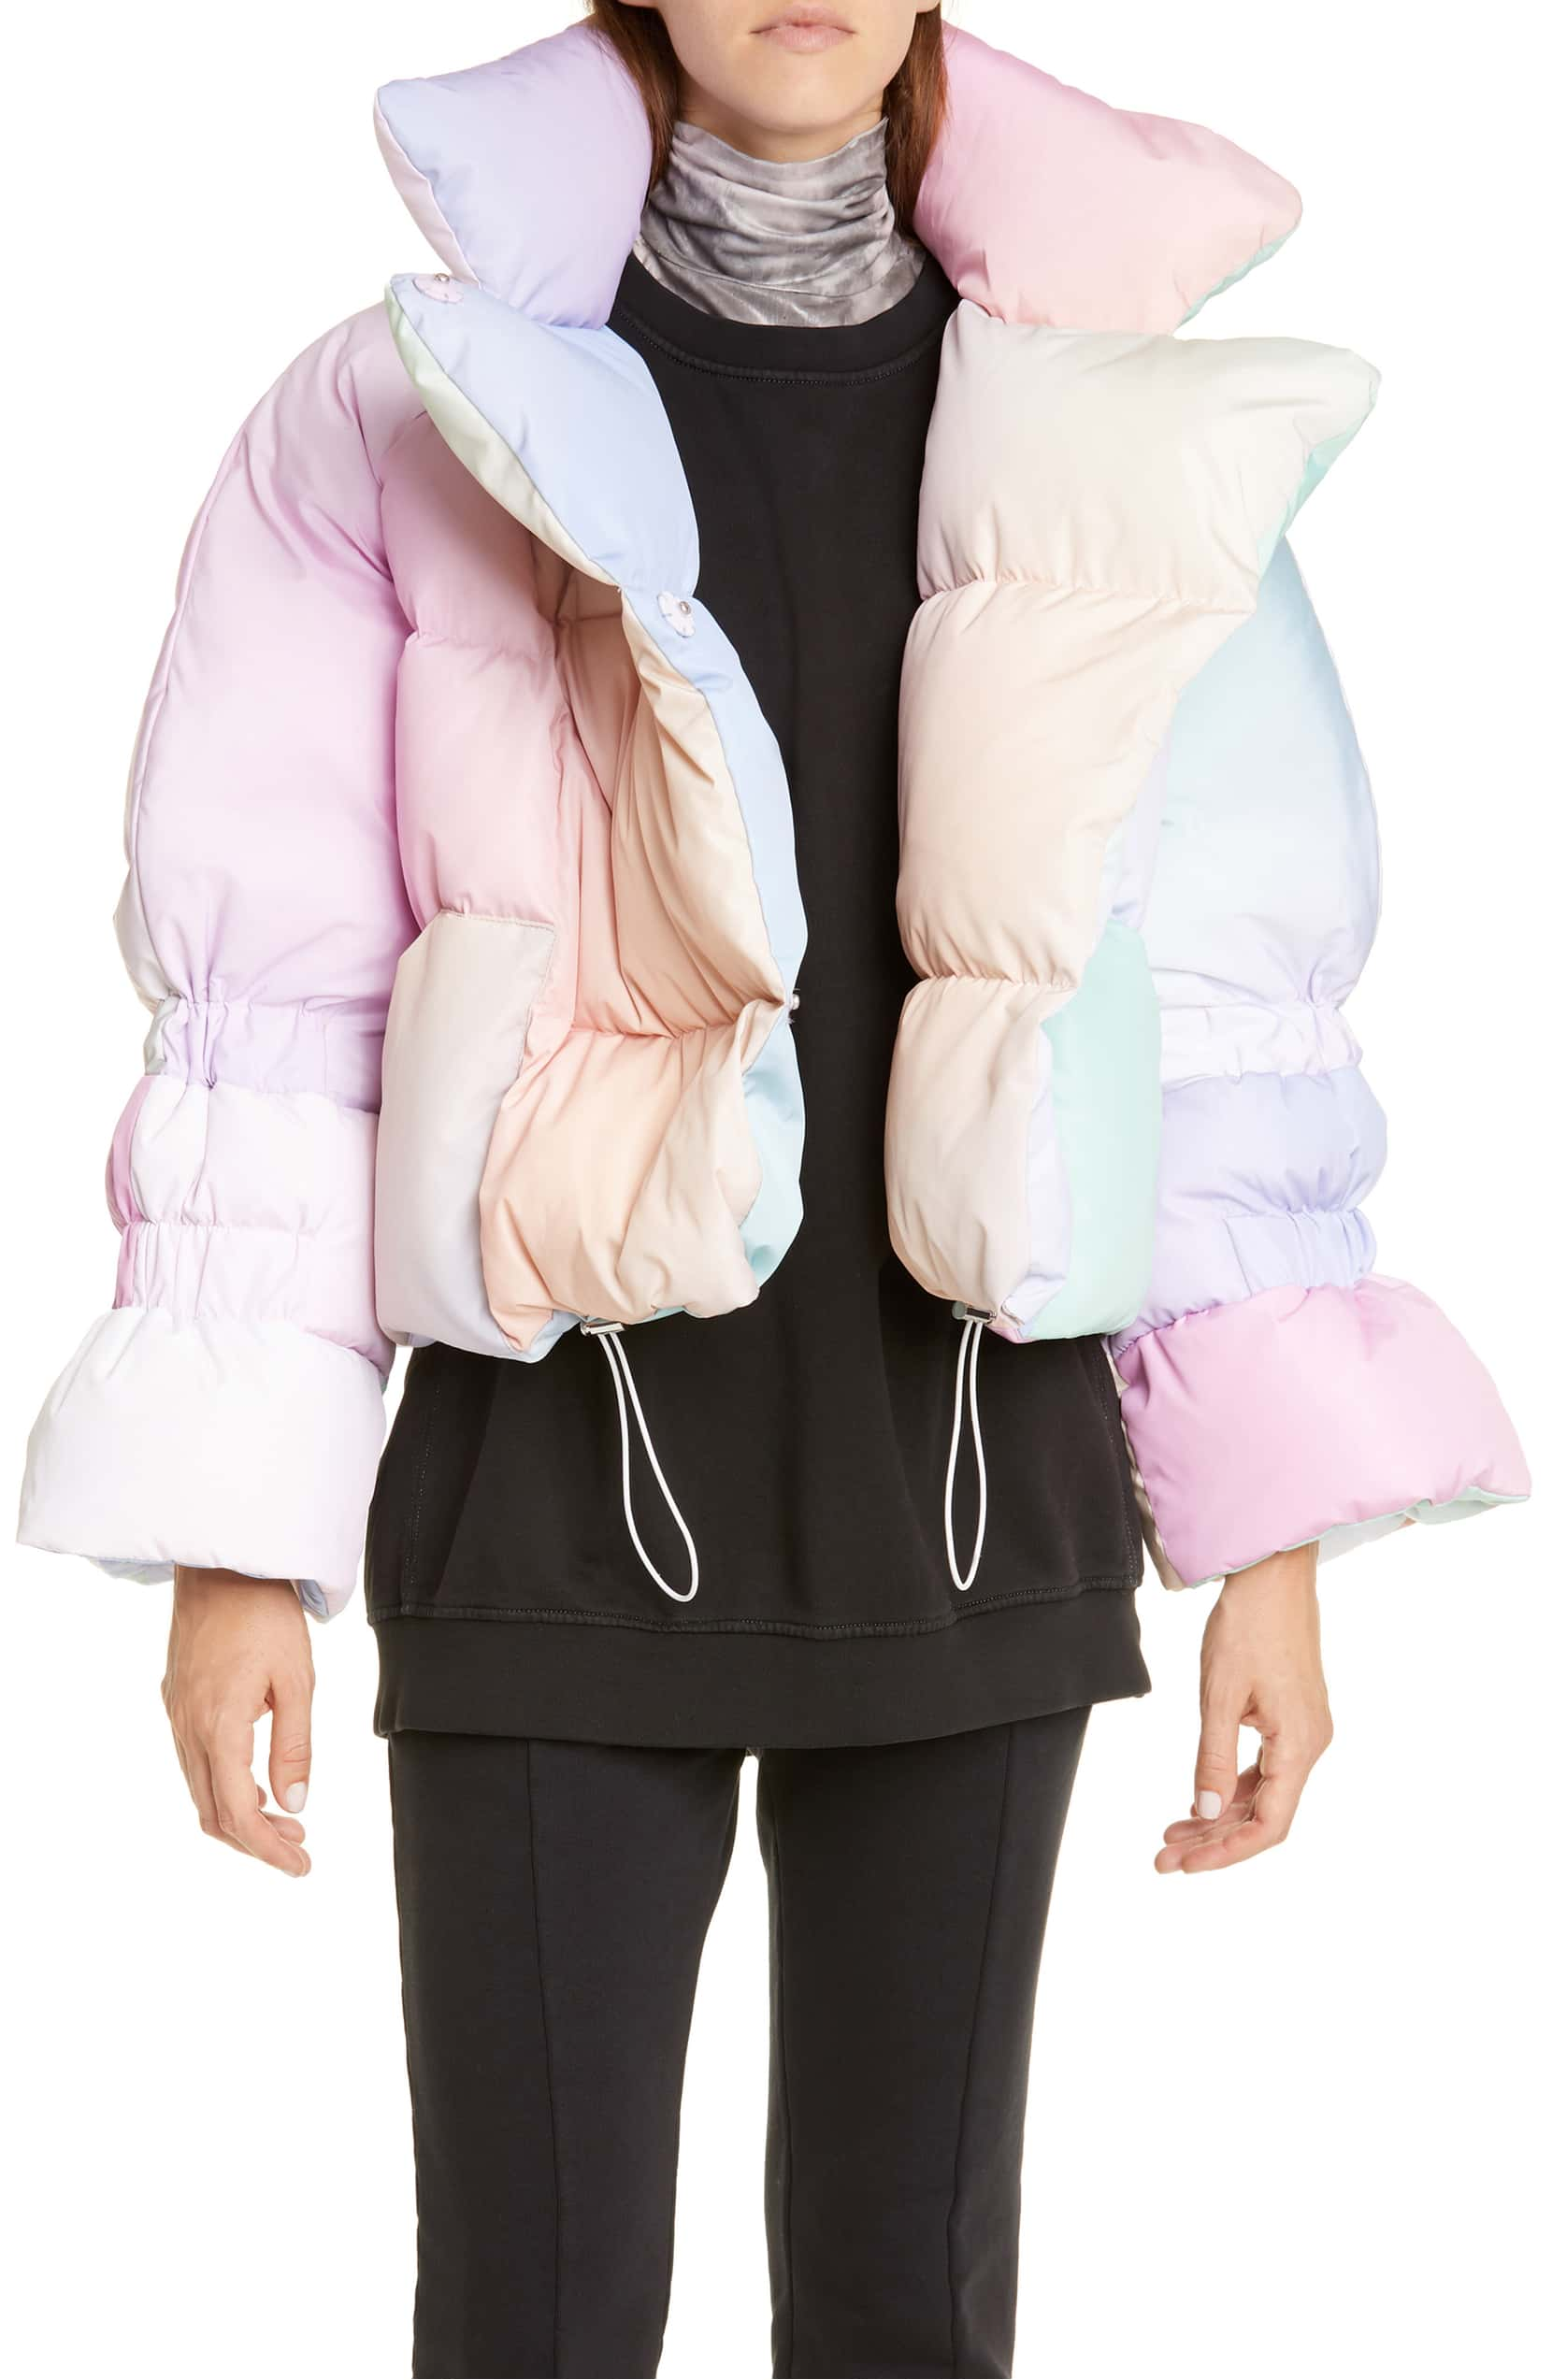 Down Jacket by Saks Potts, available on nordstrom.com Kylie Jenner Outerwear Exact Product